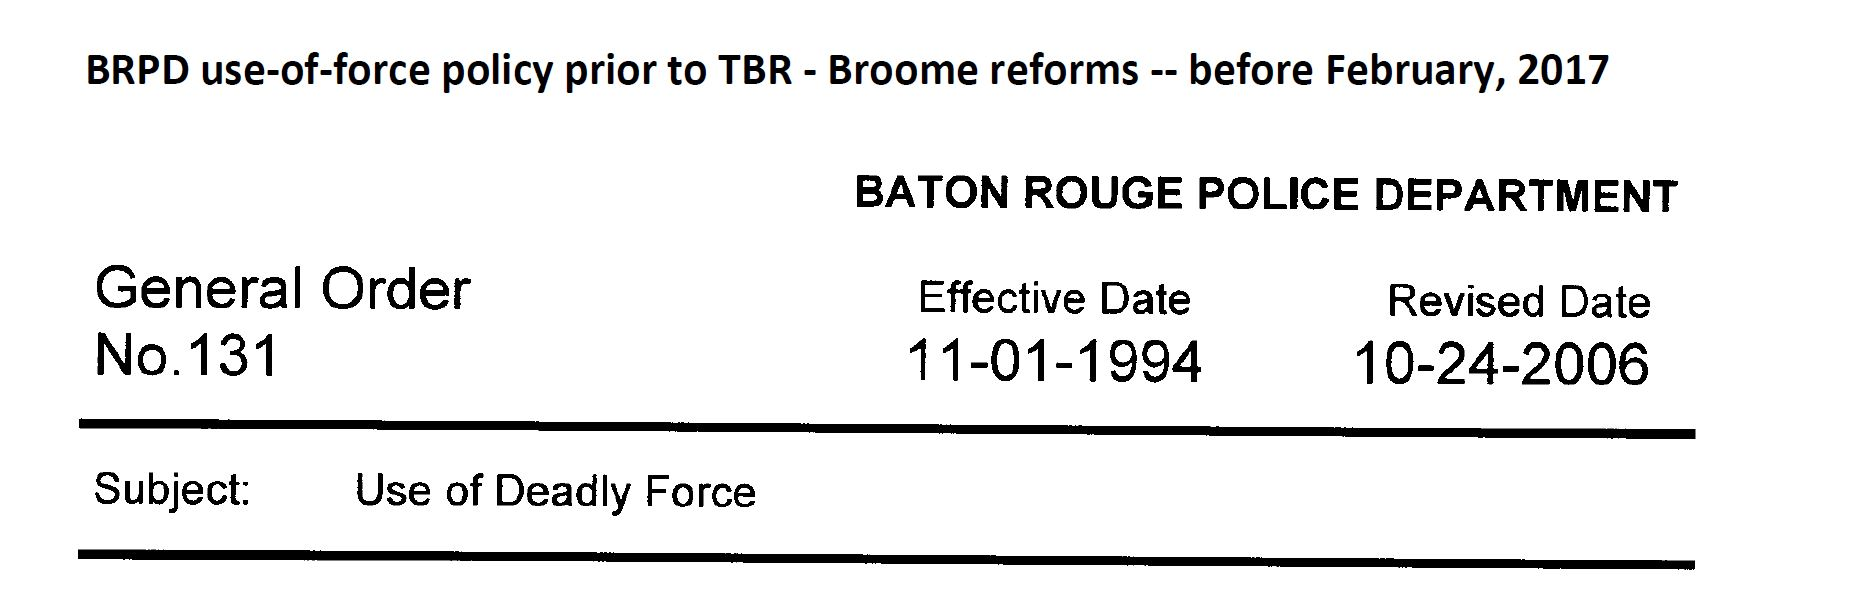 Image_BRPD_use_of_force_policy-old.JPG